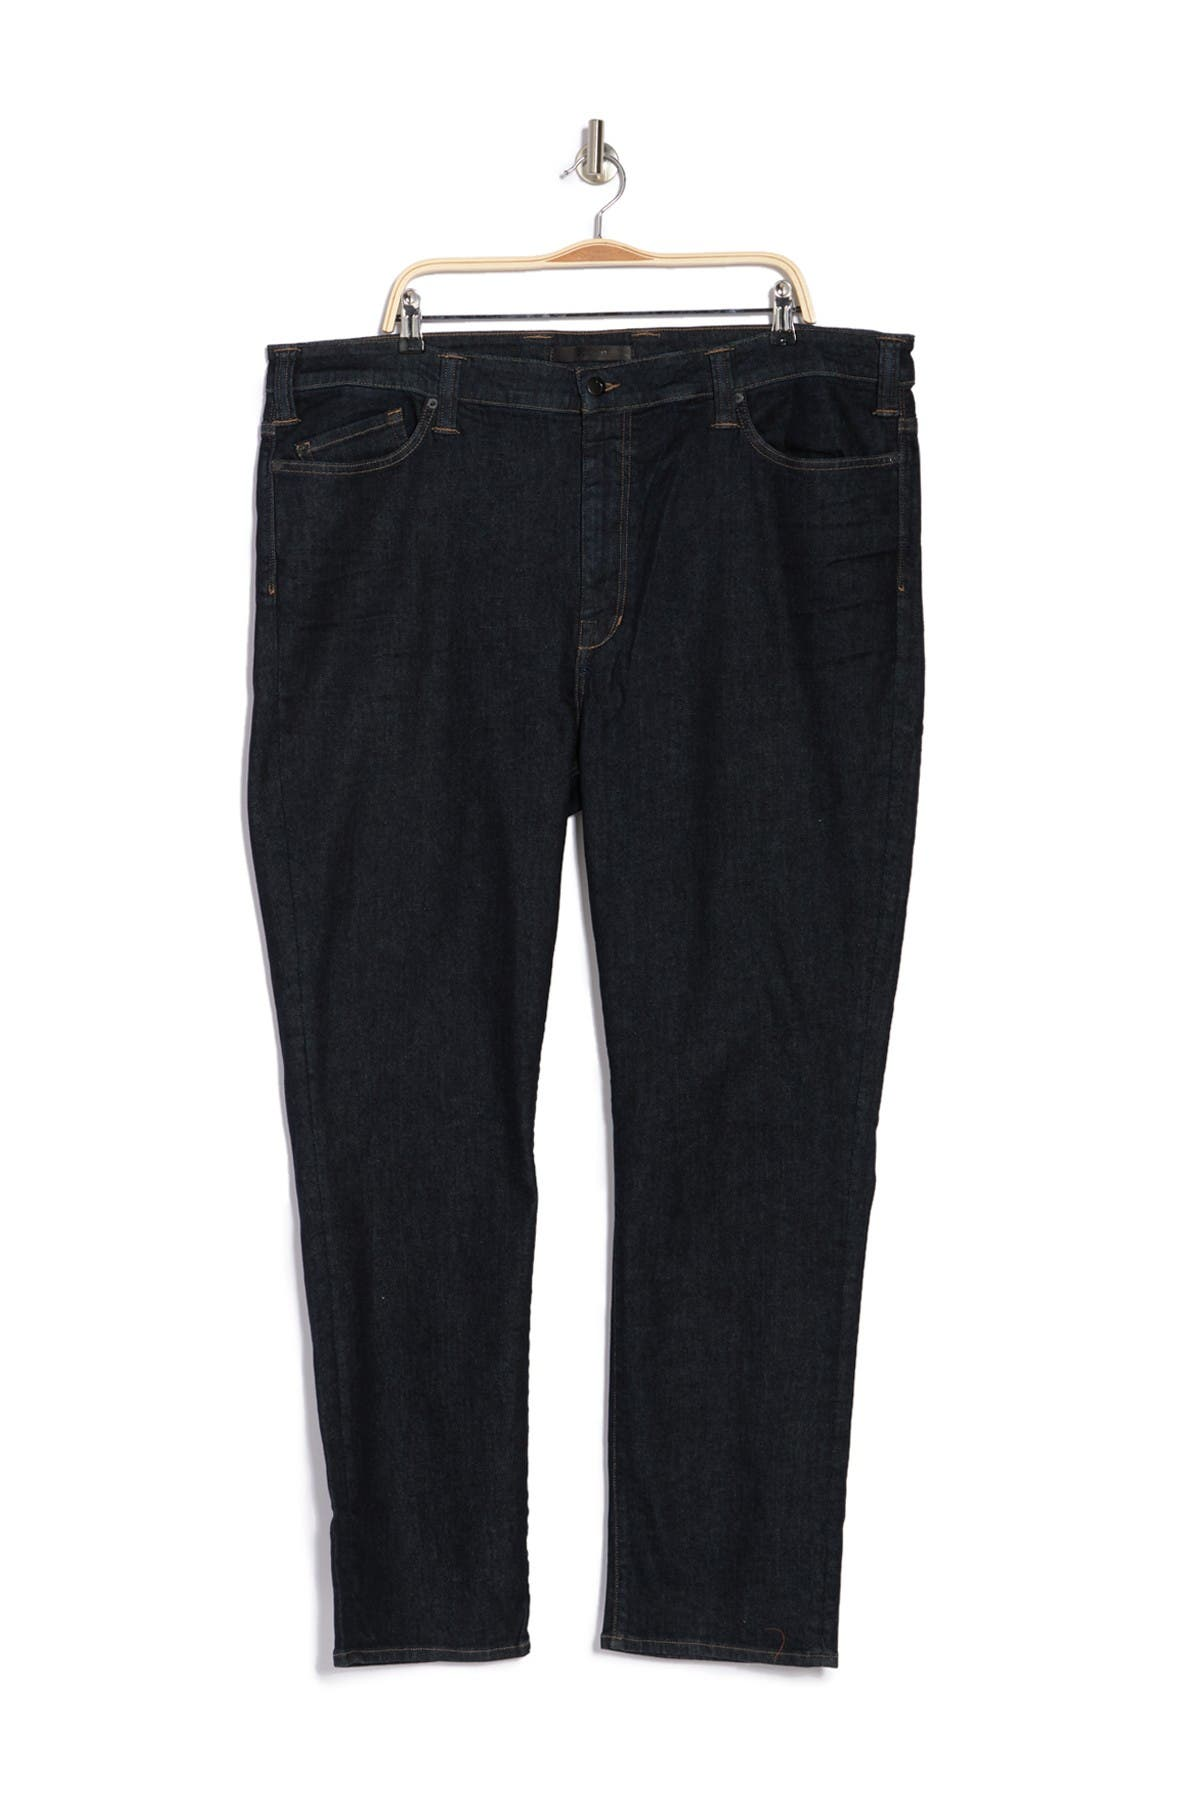 Image of Joe's Jeans Brixton Slim Fit Jeans